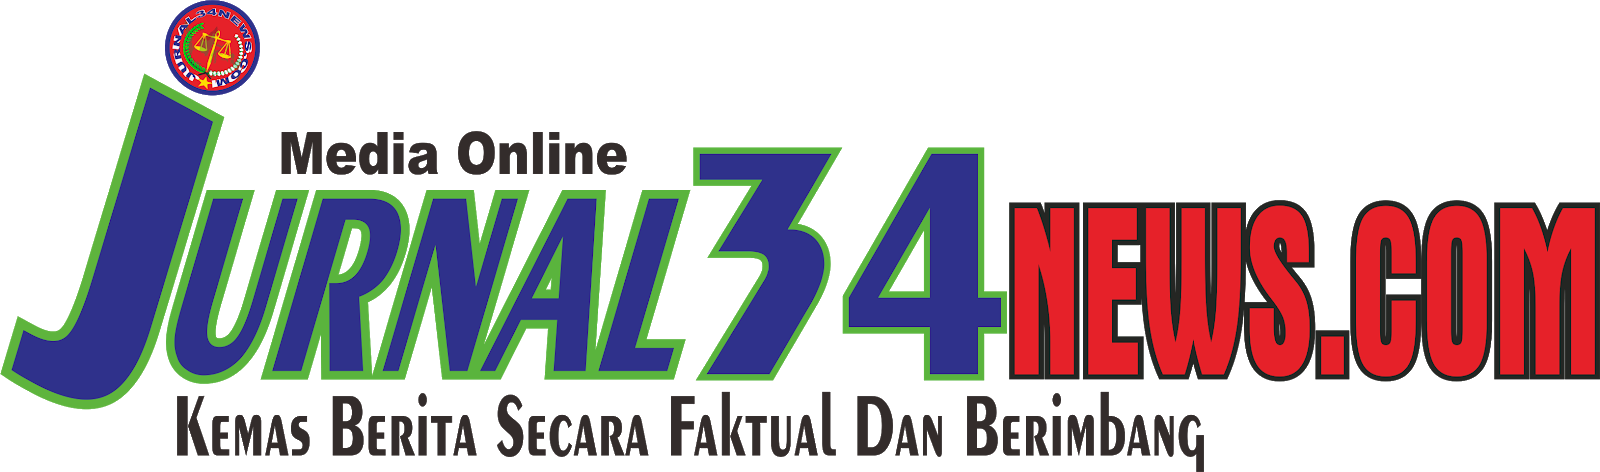 Jurnal34News